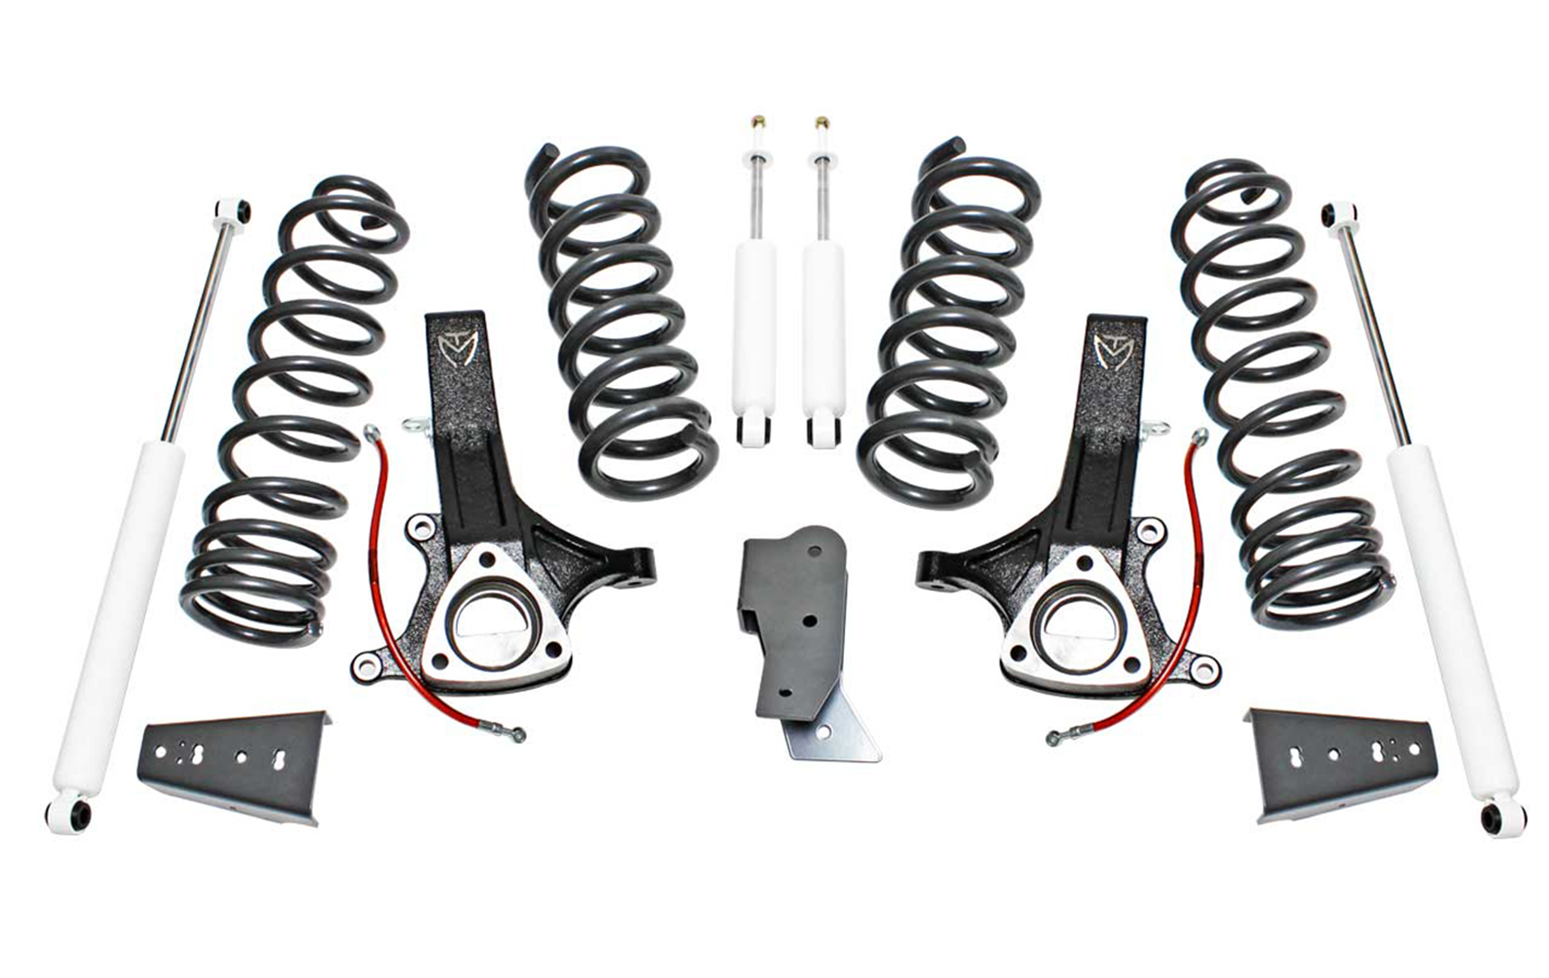 Maxtrac Releases Ram 4 5 Inch 7 Inch Lift Kits